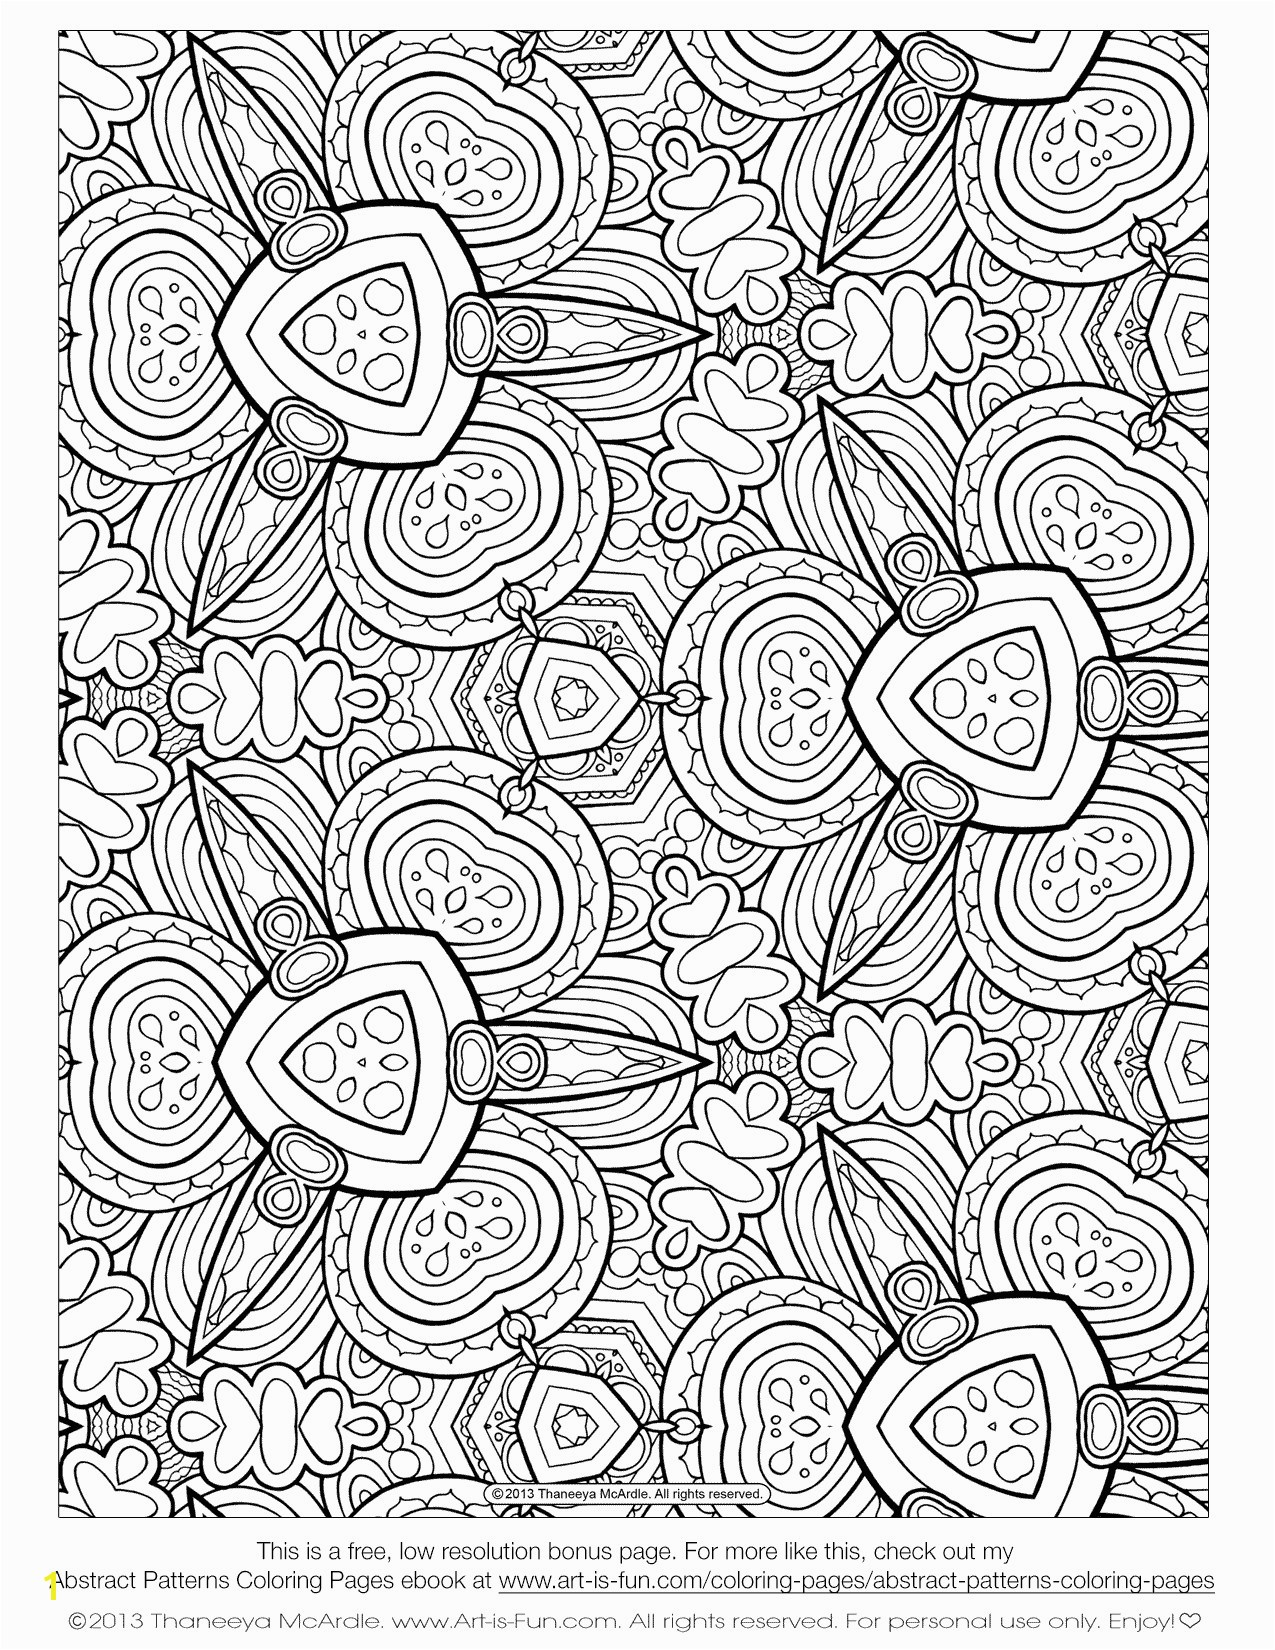 Free Printable Coloring Pages For Adults ly Cute Printable Coloring Pages New Printable Od Dog Coloring